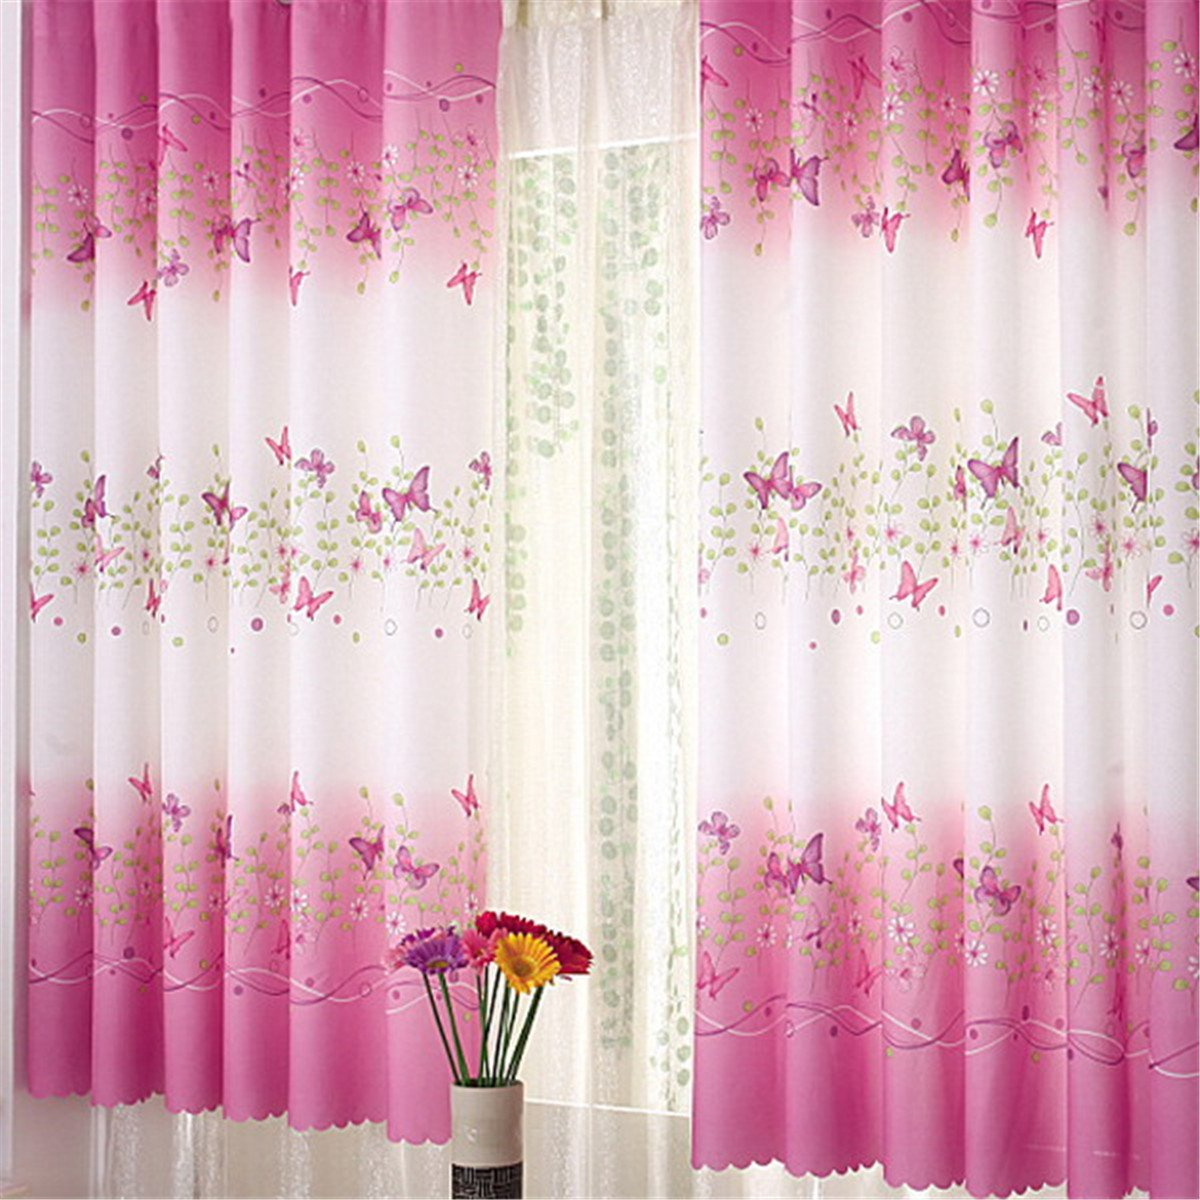 3.3'x6.6'Butterfly Flowers Printed Window Curtains with Hooks, Nursery Window Curtain Panels Girl Light Blocking Window Drapes for Living Room pinnacleT1